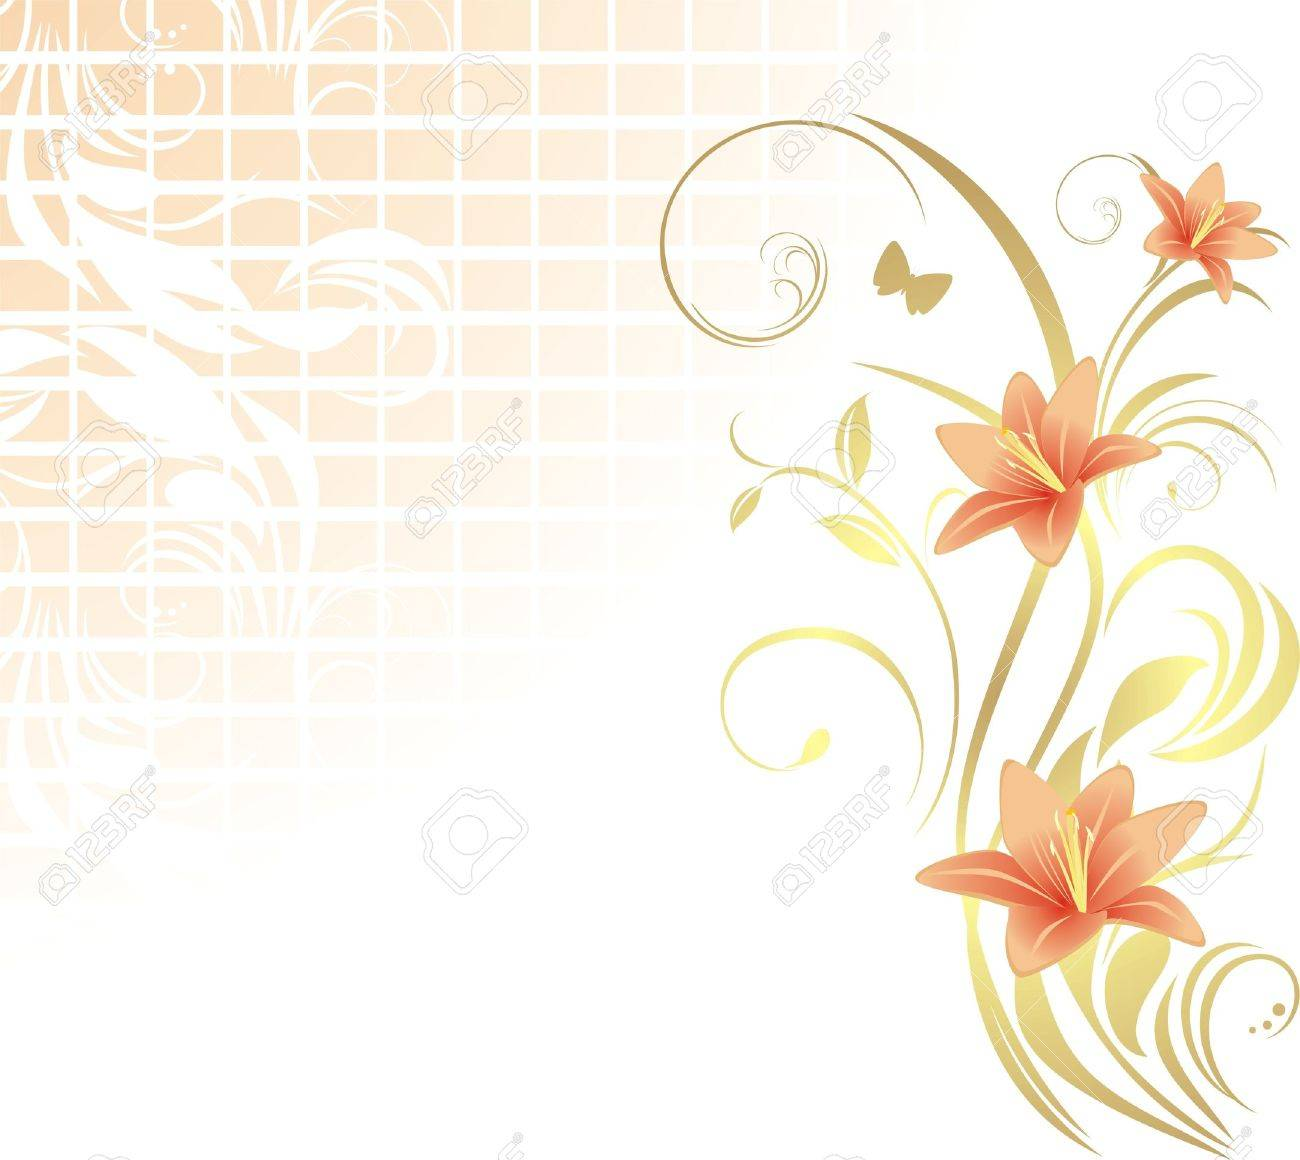 28253 lily flower cliparts stock vector and royalty free lily lily flower frame with lilies pattern for design illustration dhlflorist Images